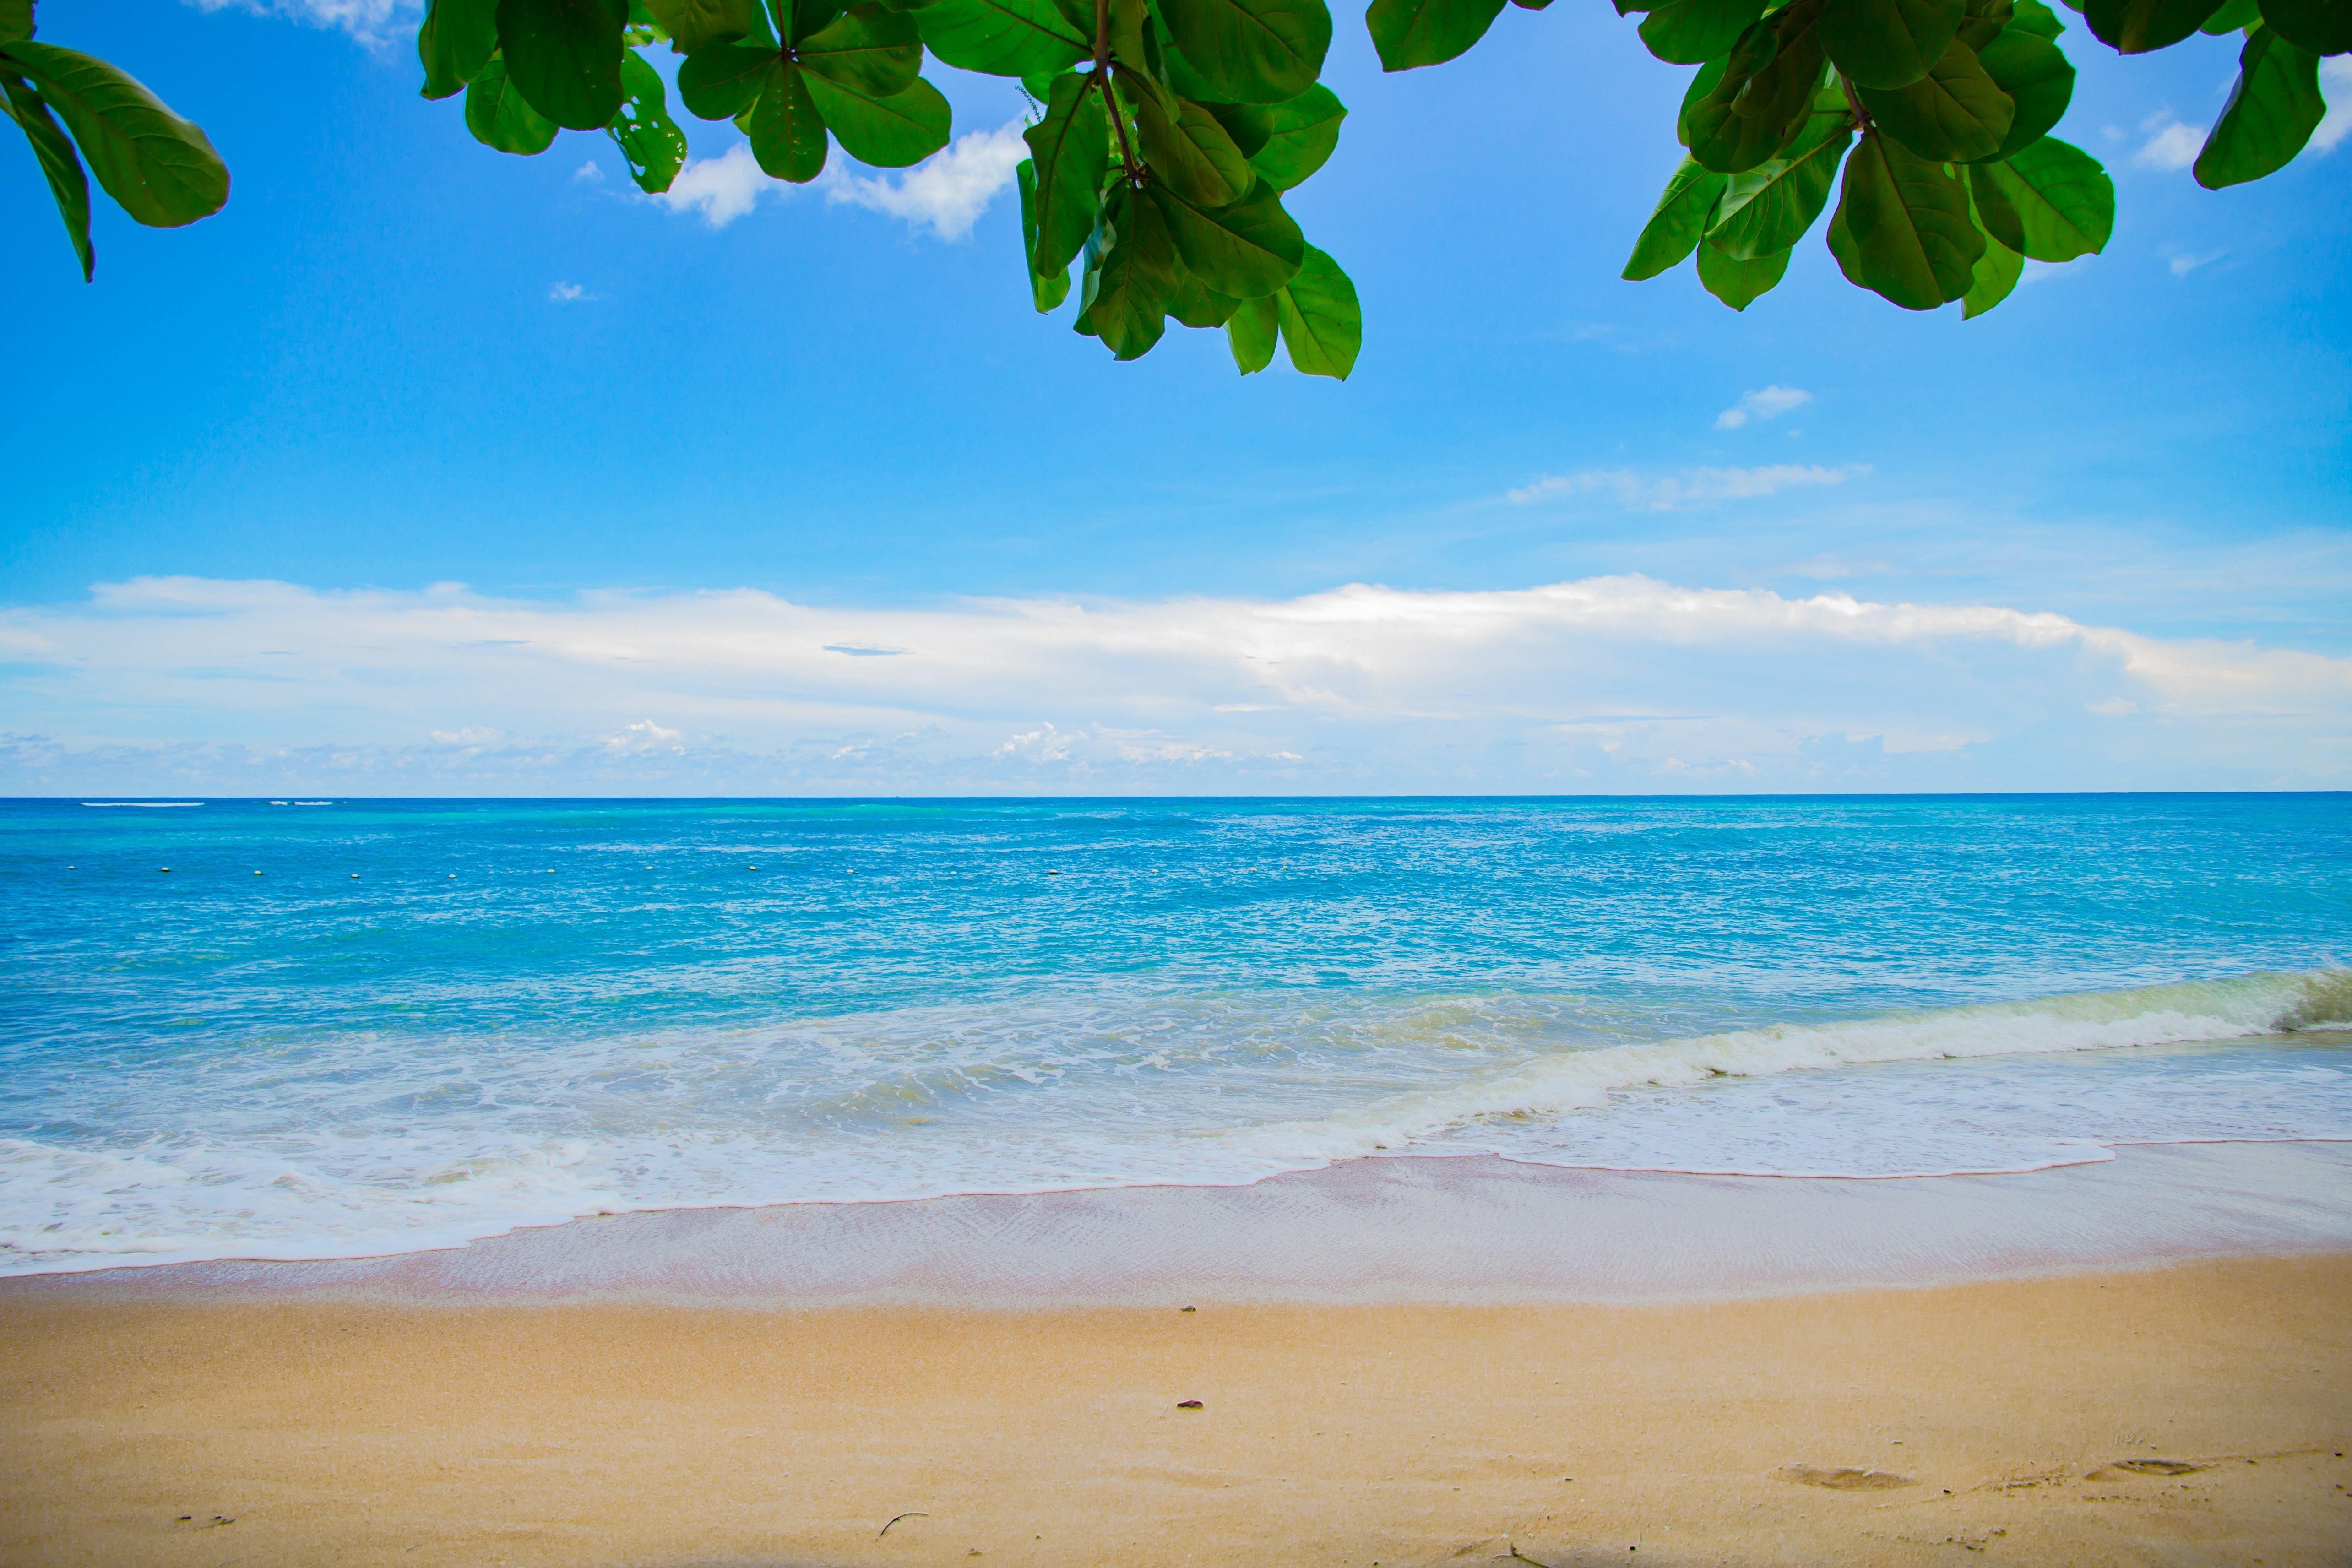 Most of these pictures feature beautiful beach scenes with people, sand, ocean and palm trees and make excellent hd desktop wallpapers.